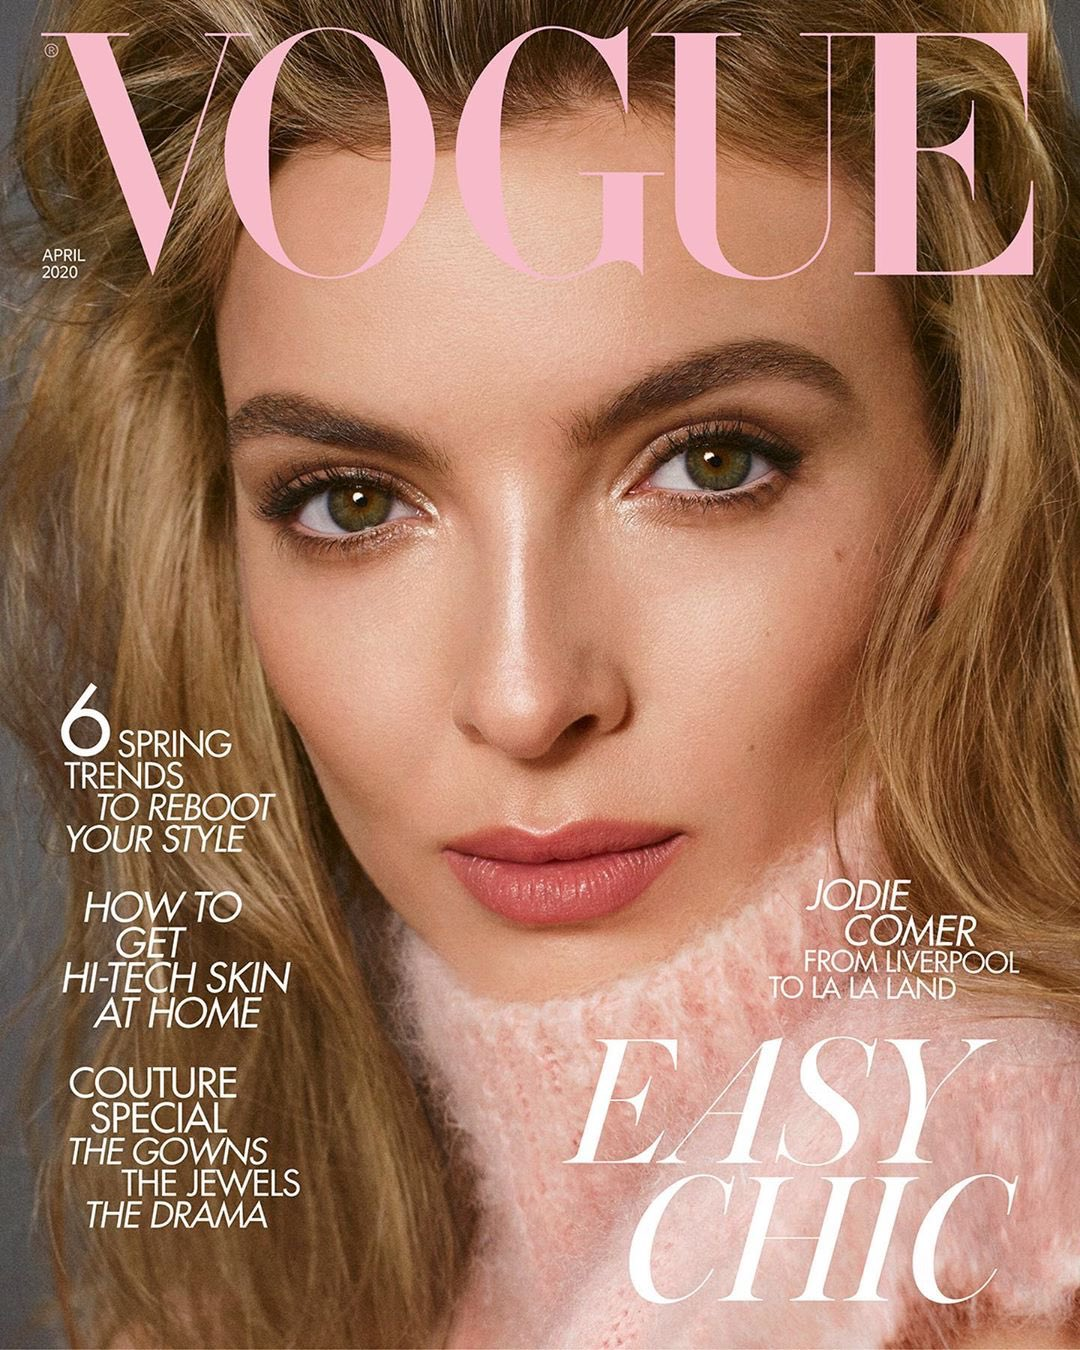 Killing Eve's Jodie Comer revealed as Vogue's April 2020 cover star